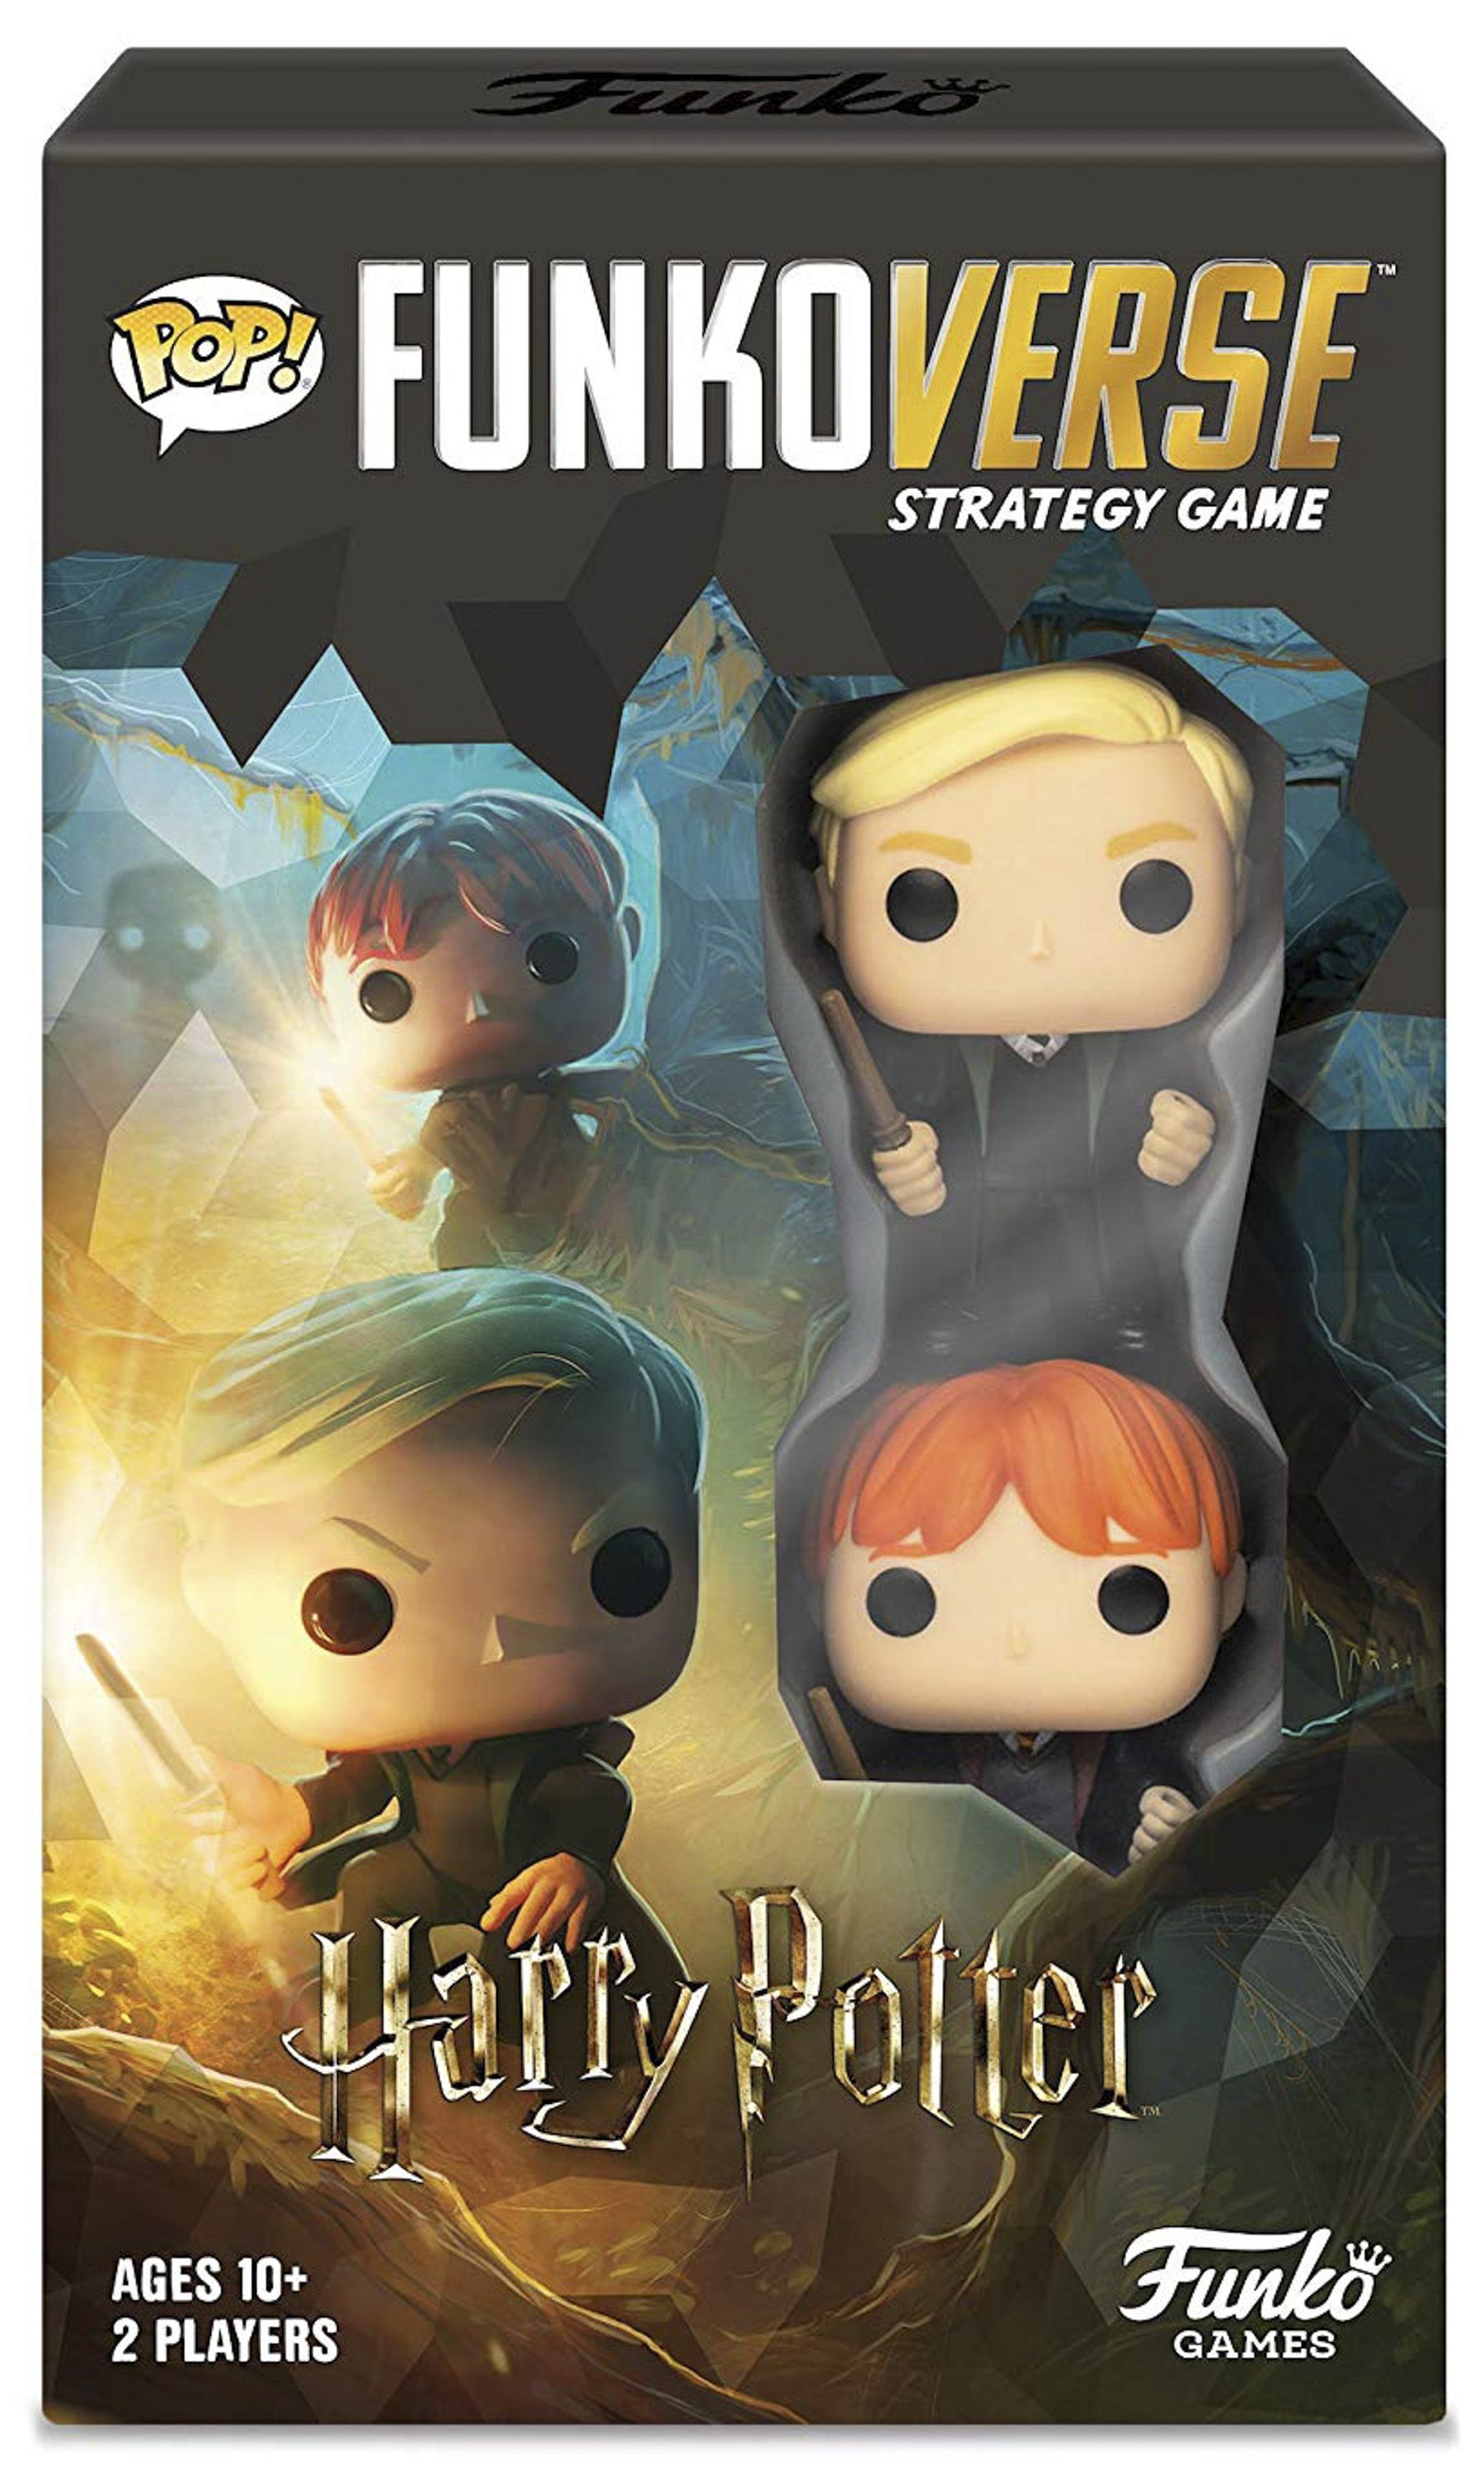 Funko Pop Just Released Its First Ever Board Games Featuring Harry Potter Dc And More Strategy Games Harry Potter Harry Potter Ron Weasley